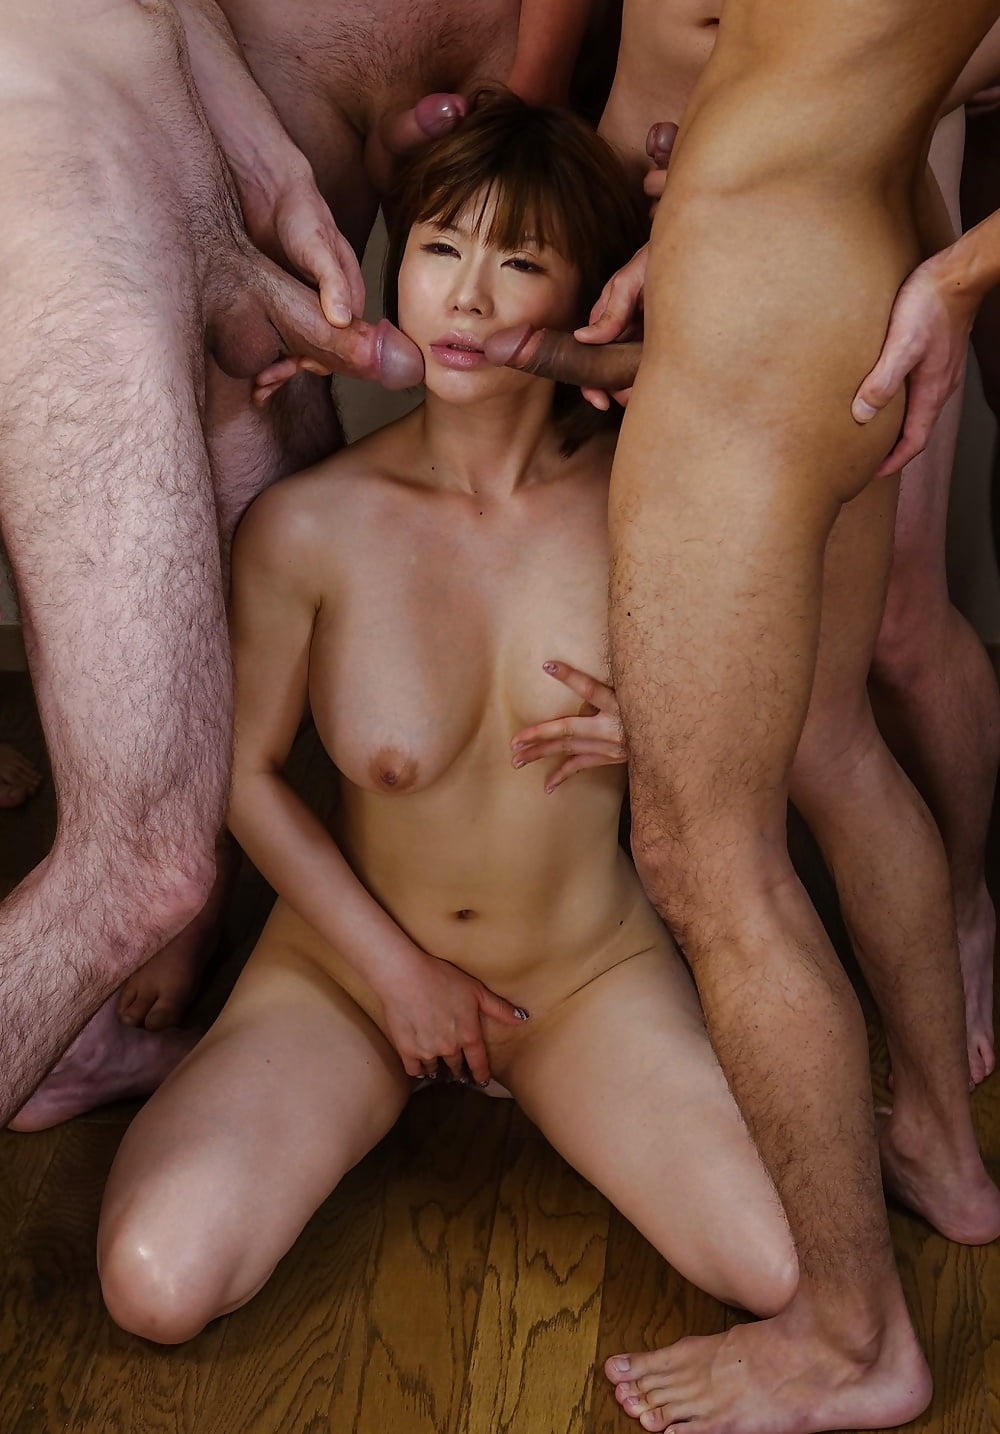 Brutal gang sex chinese girl, hot sexy girls young pussy close ups